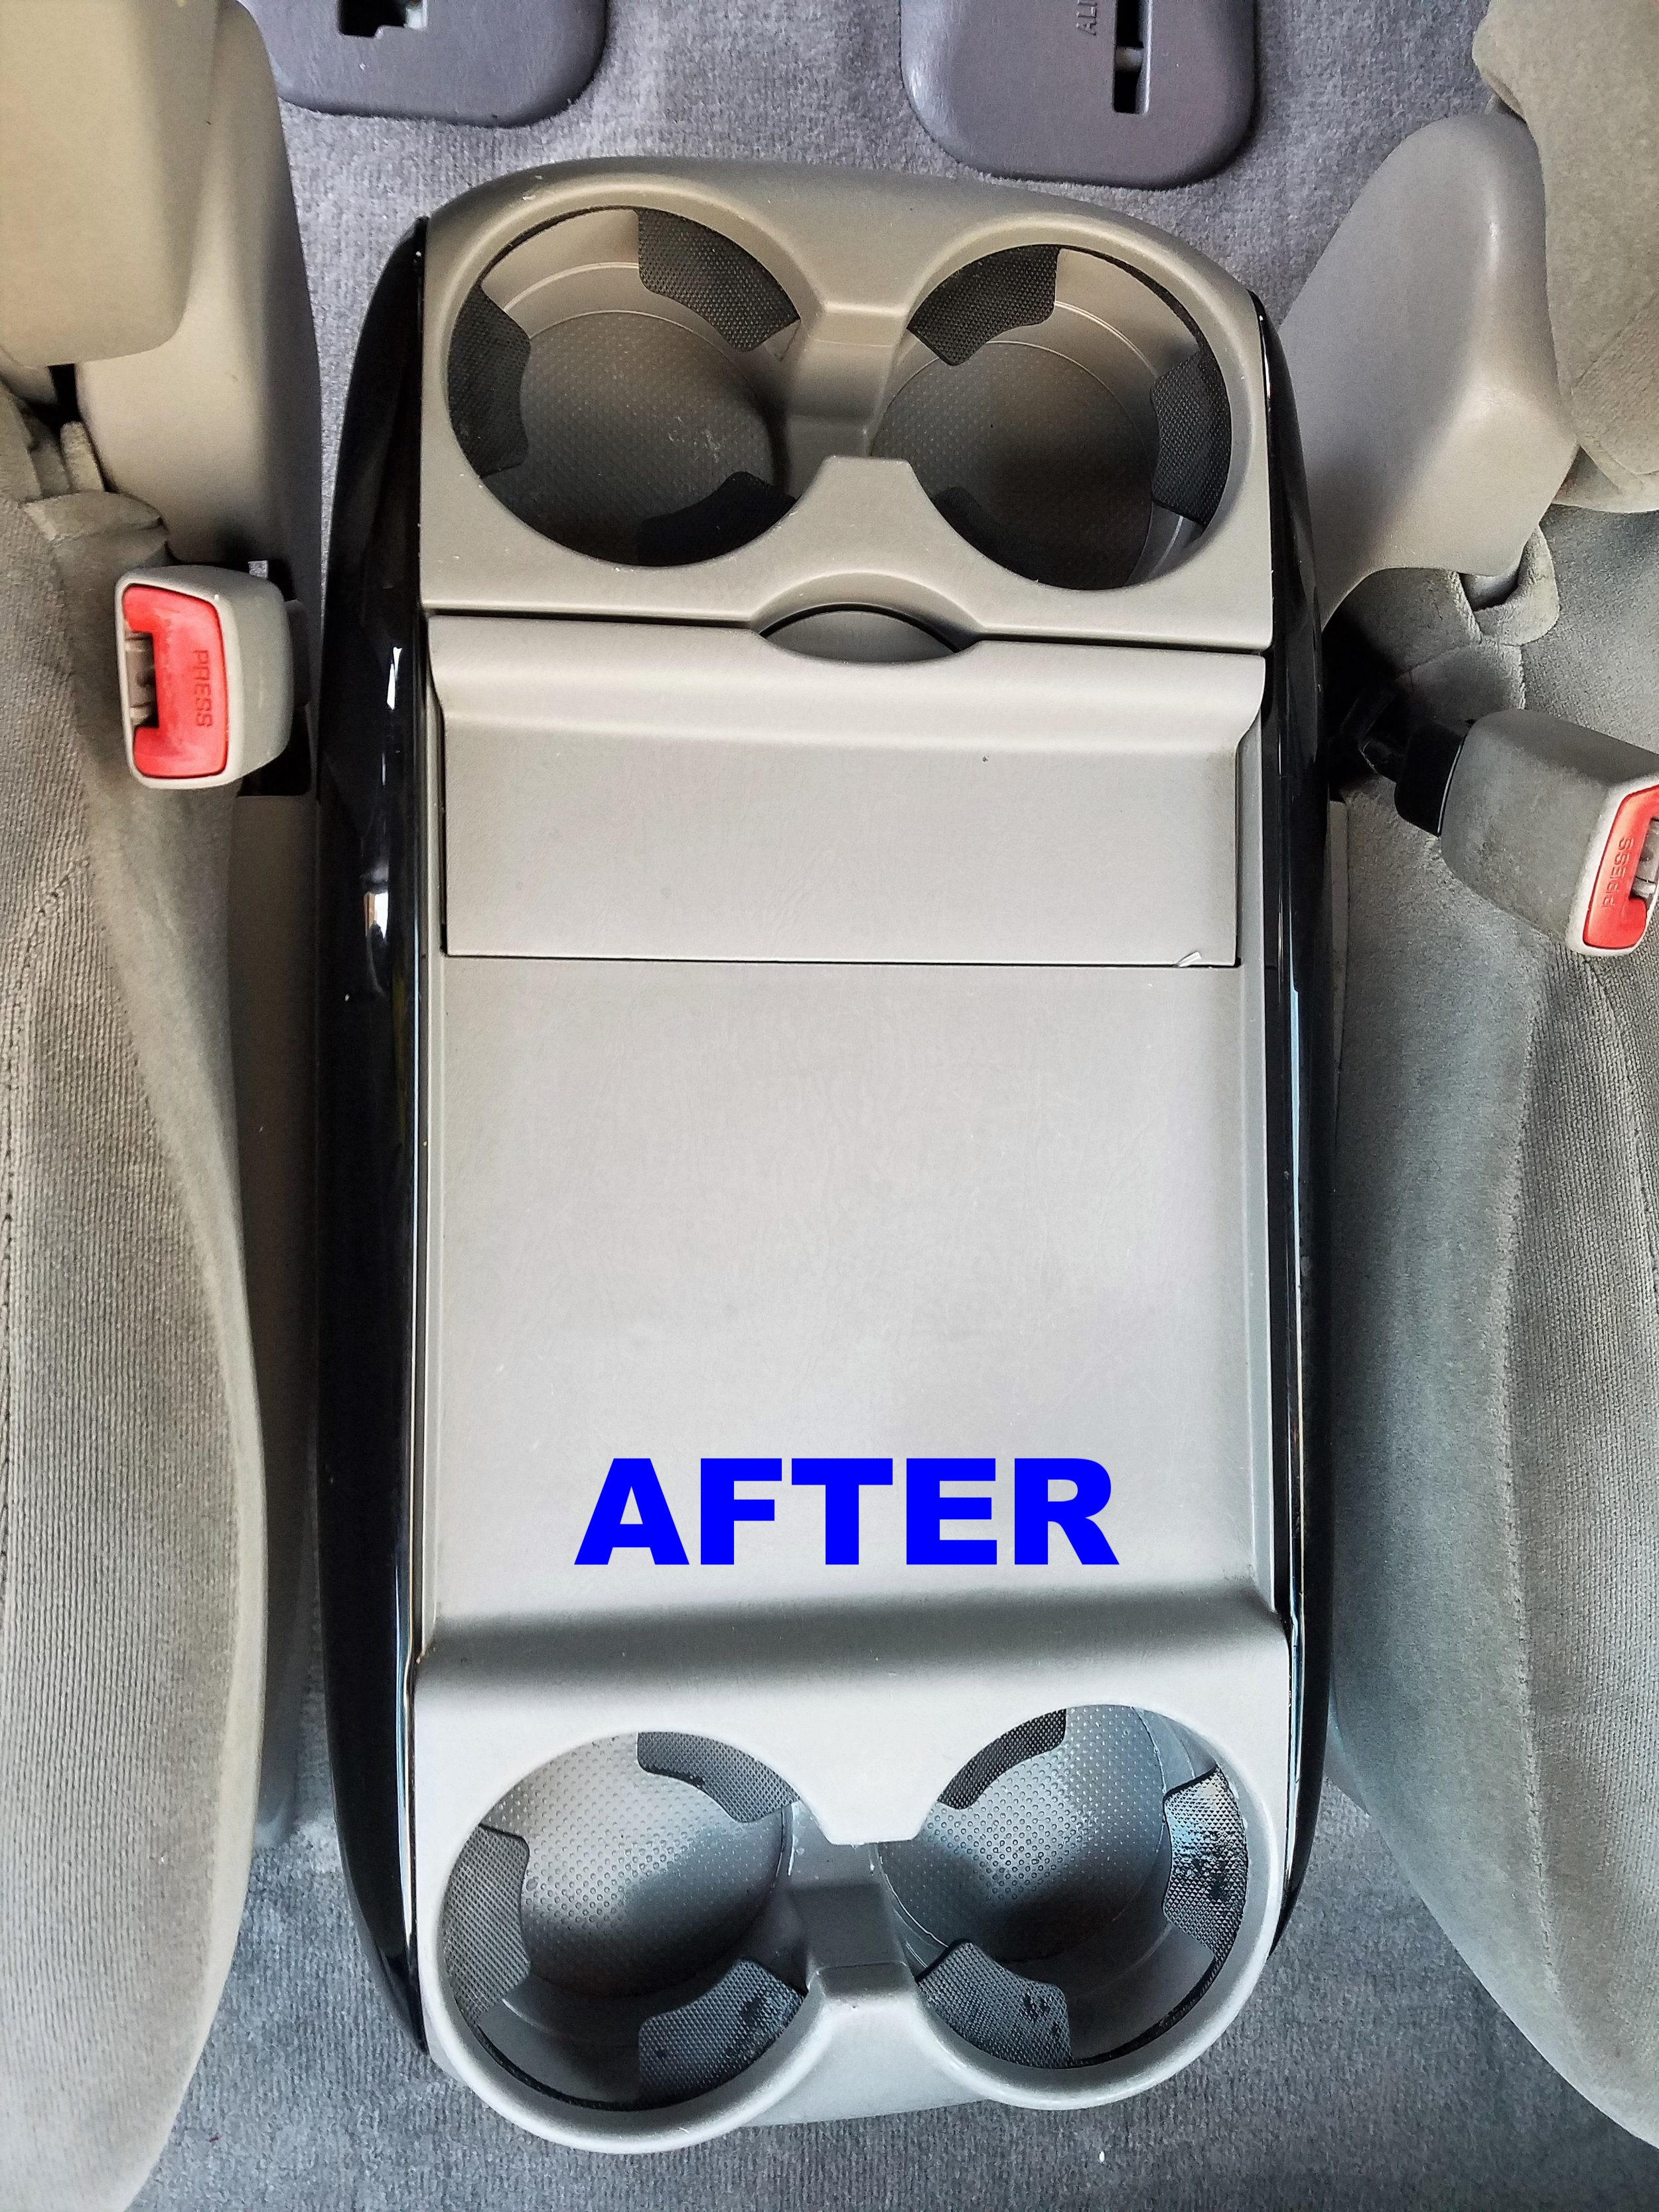 Copy of Car detailing Prices?